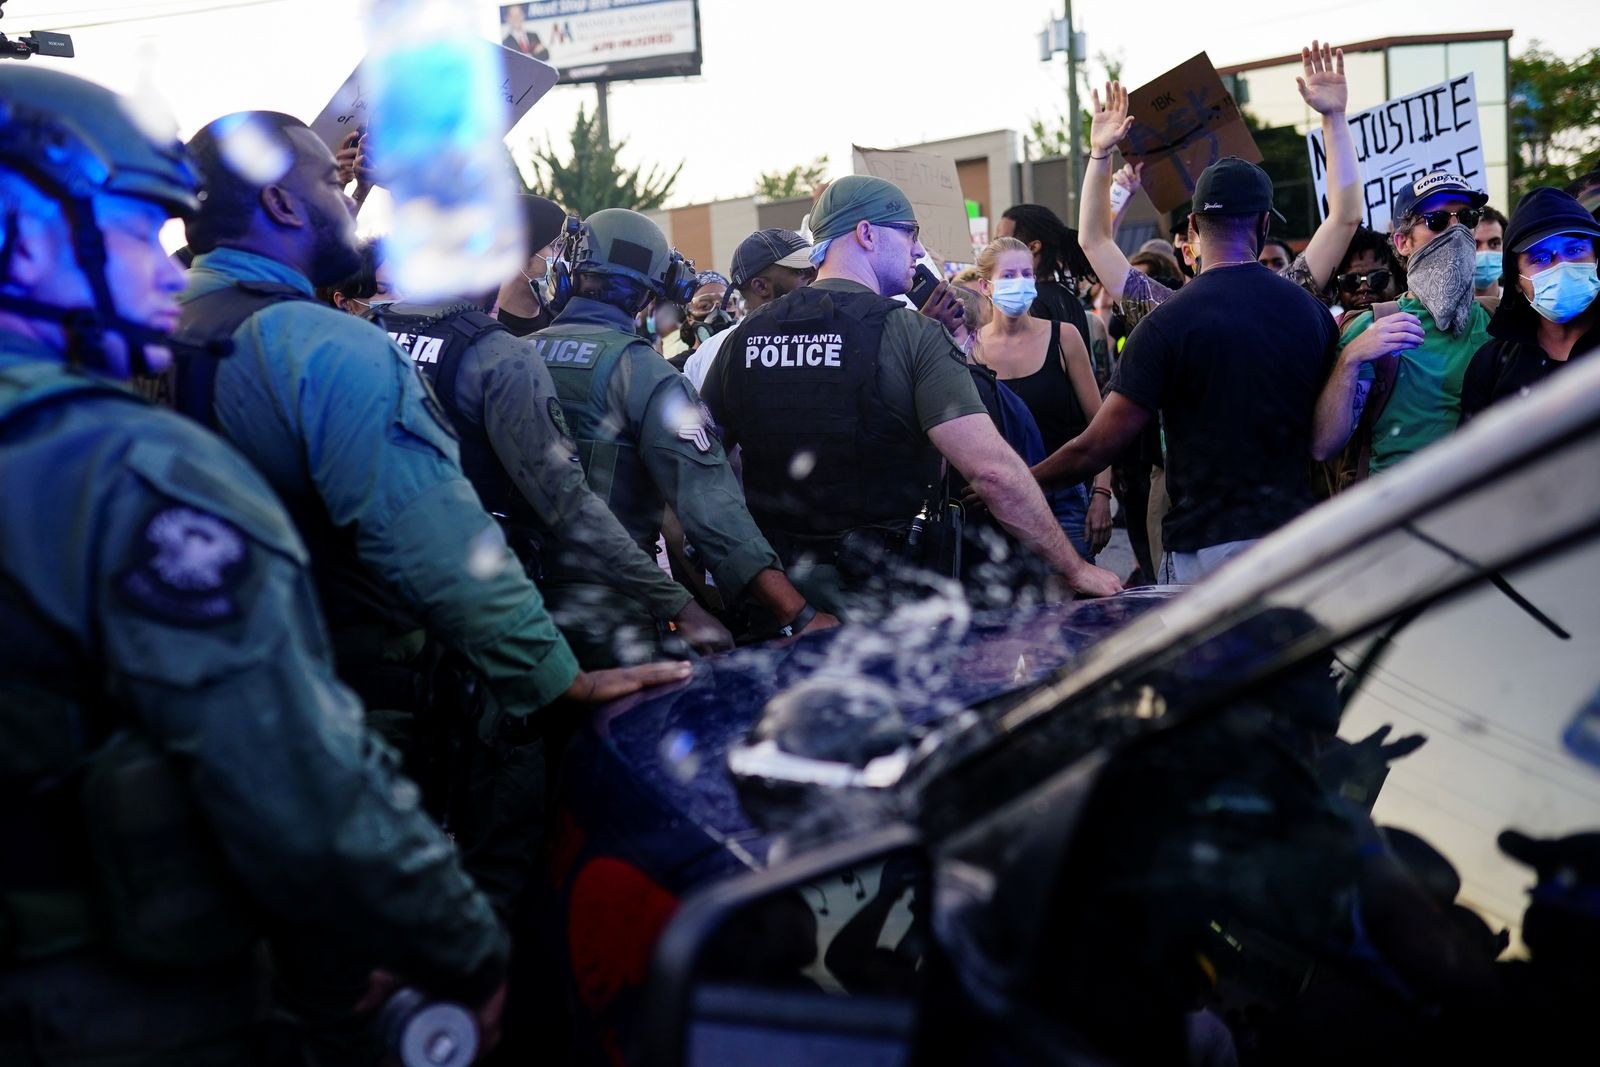 Police officers escort a police SUV from a crowd of protesters while bottles of water are thrown at them during a rally against racial inequality and the police shooting death of Rayshard Brooks, in Atlanta